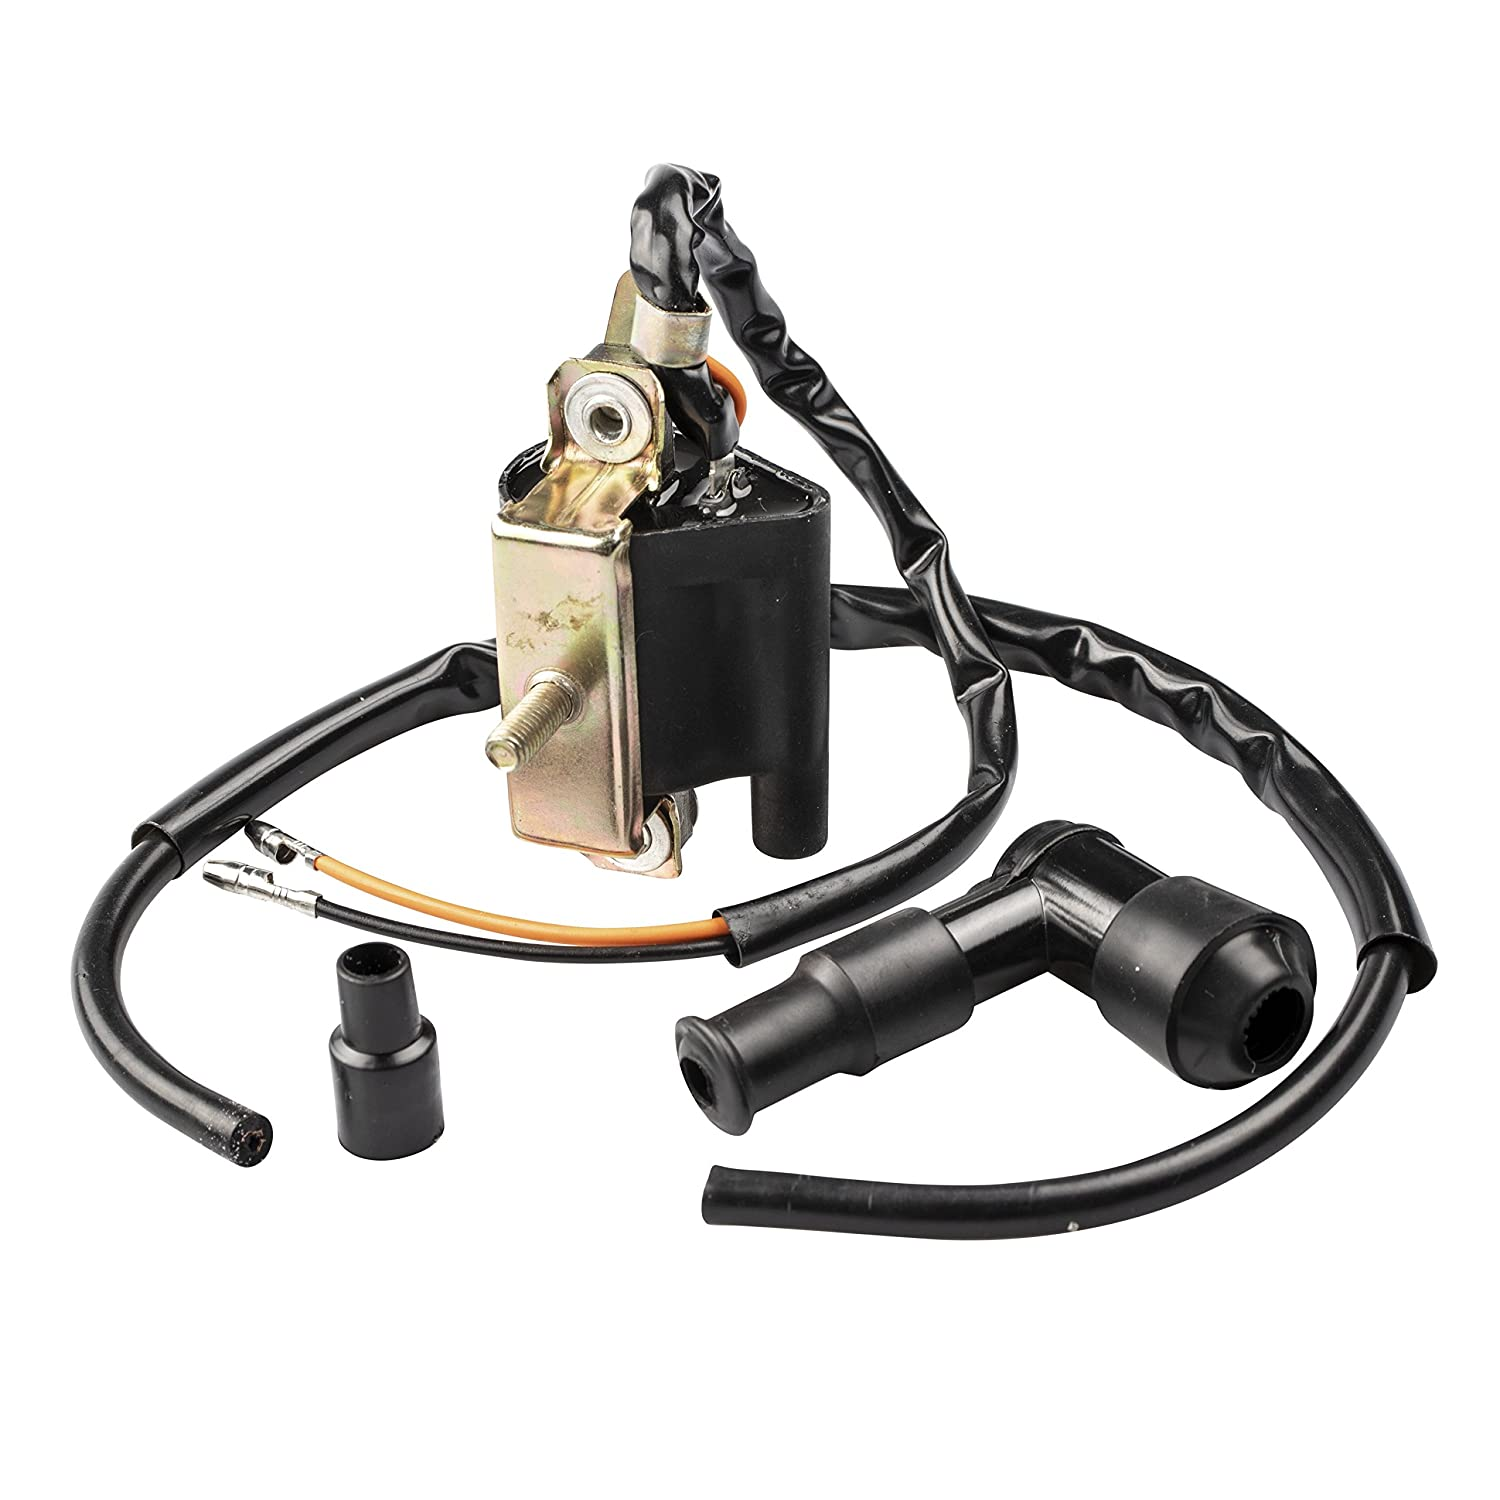 2wc Ignition Coil 6v For Honda Z50 Ct70 C70 Cl70 Xl70 Wiring Sl70 Moped Scooter 18 Length Automotive